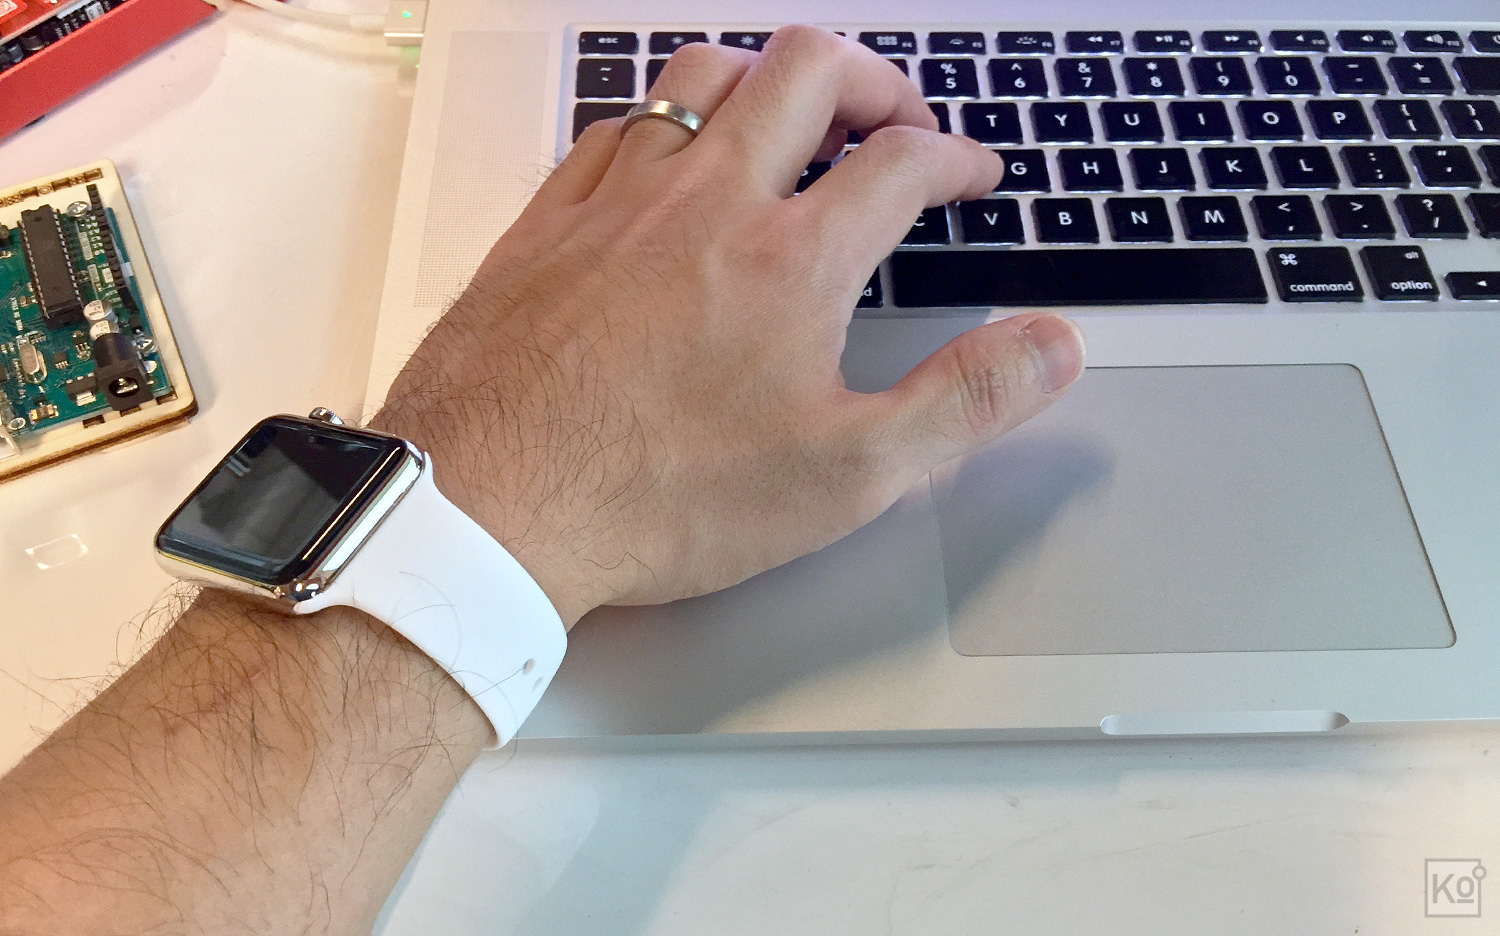 For those who might be wondering, neither the Sport Band, shown here, nor the Milanese Loop, depicted in a few photos above, has scratched the palm rest on my MacBook Pro. I'm also happy to report that neither of the bands has caused me any wrist discomfort while typing. Furthermore, I've had no problem at all with either band pulling on my wrist hair. On the contrary, I've found both to be terrifically comfortable: the Milanese Loop drapes around the wrist as though it were made of fabric, giving it the edge in terms of pure comfort, but the Sport Band gets the nod when I work out because it retains a consistent fit, whether I'm running, climbing or even in the pool.